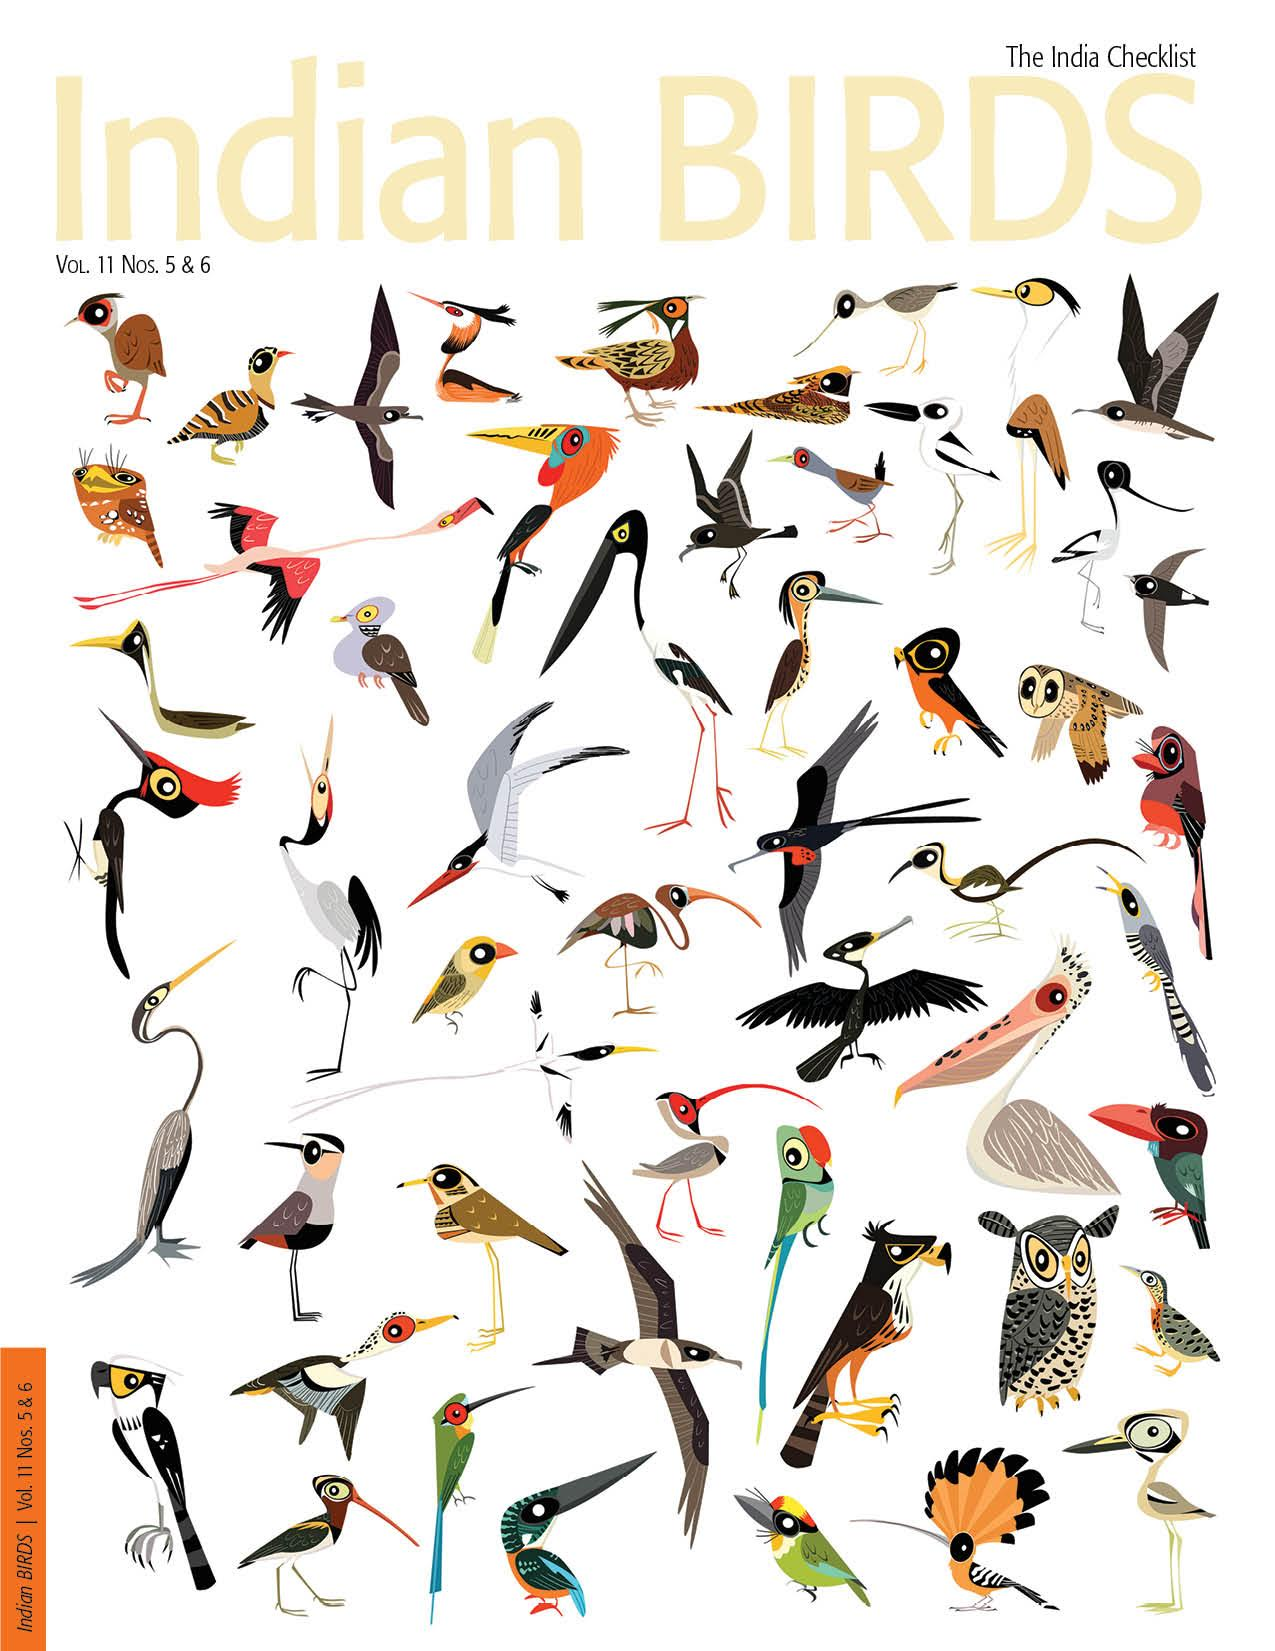 The cover of the journal Indian BIRDS to mark the publication of the checklist. Credit: Special arrangement